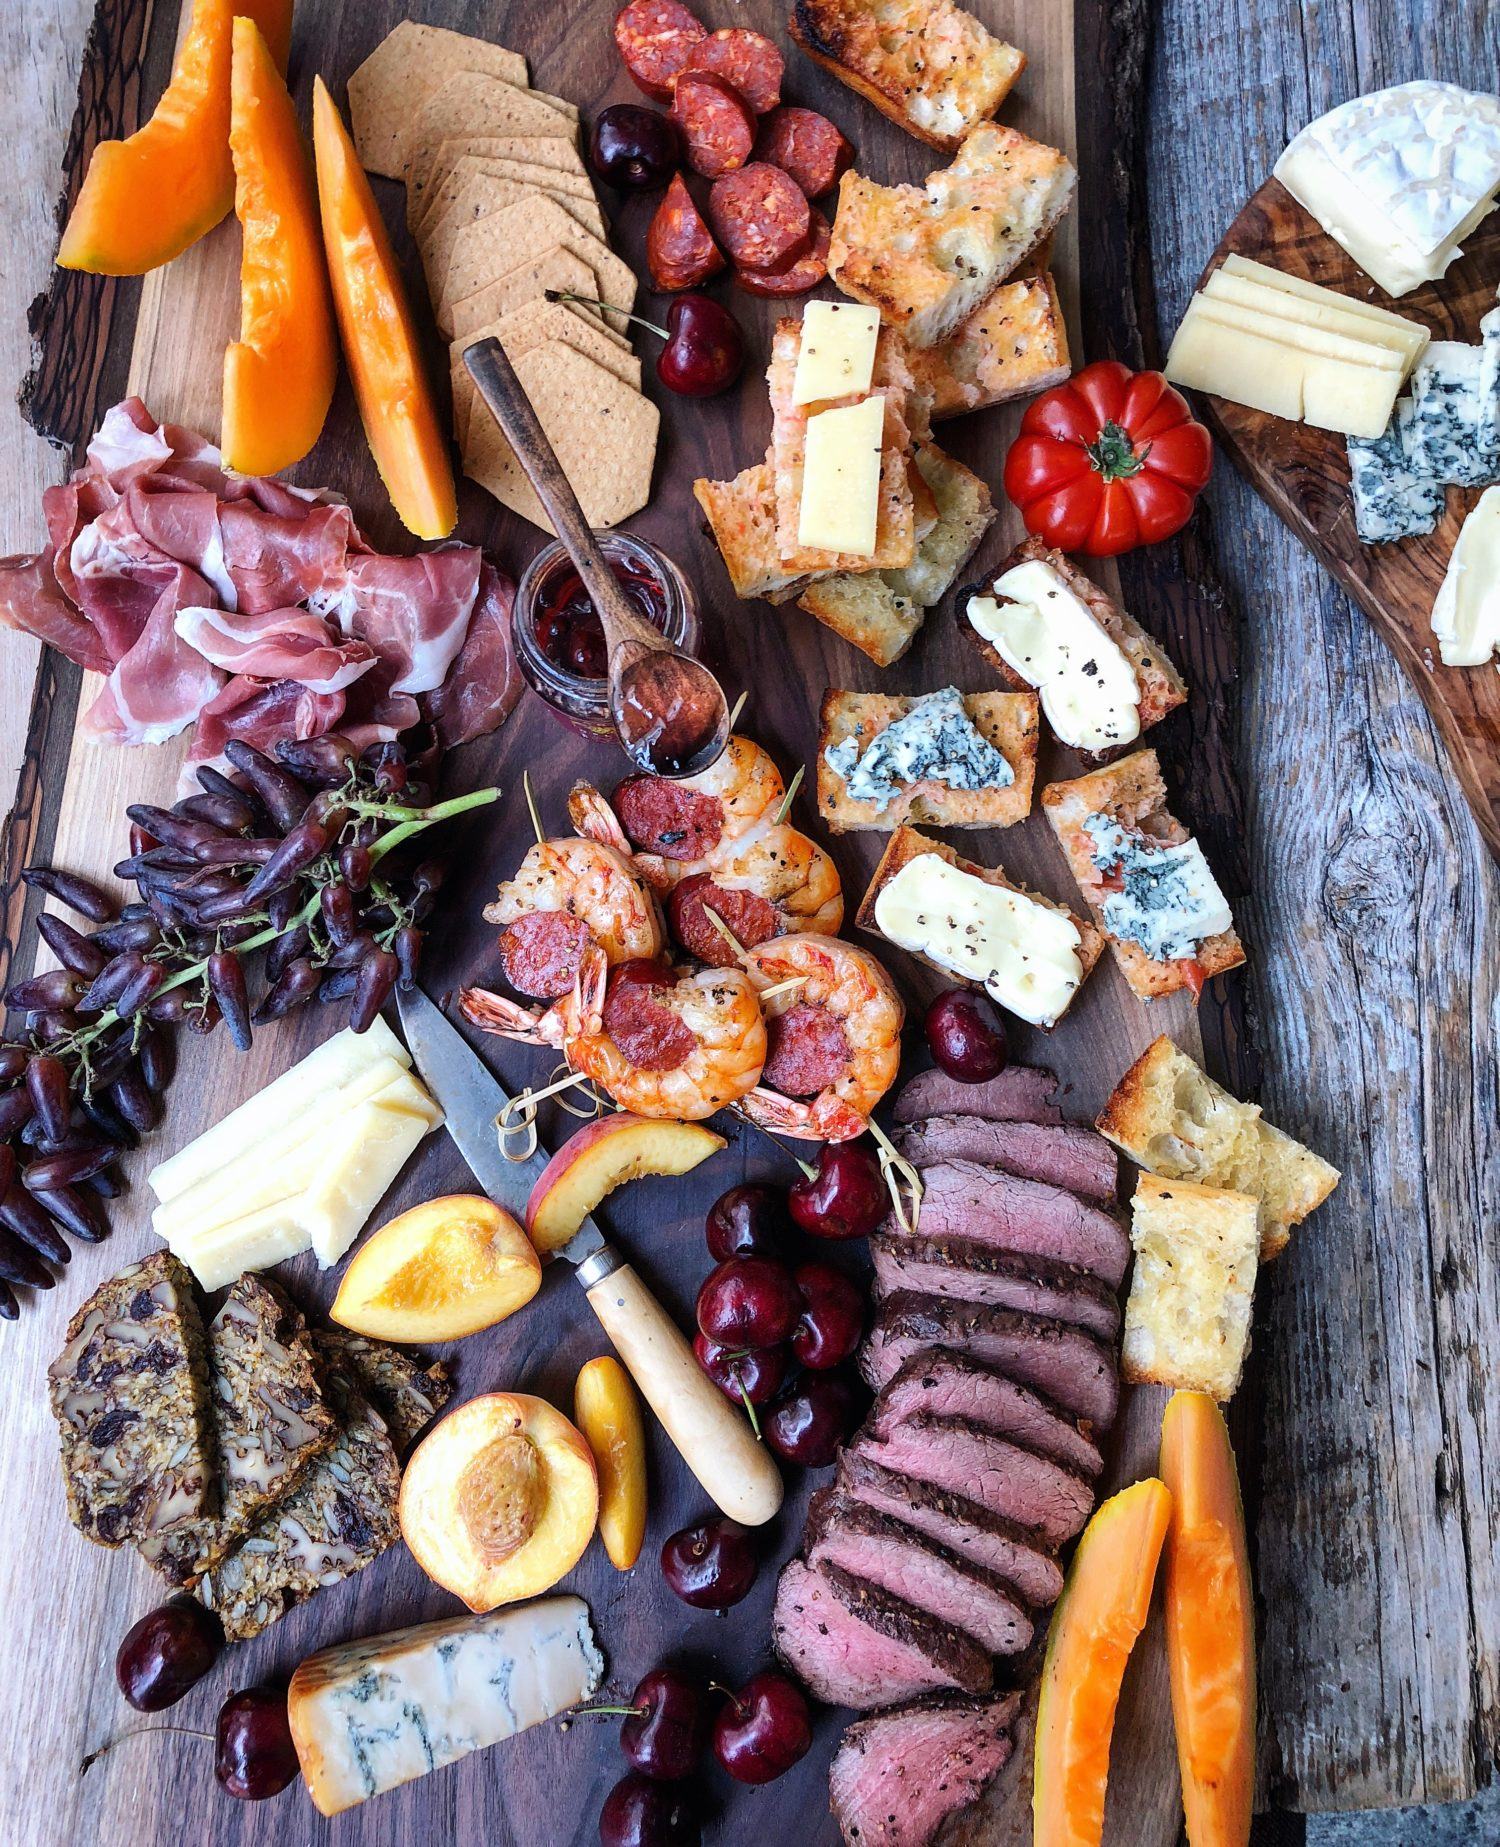 Summer Grilling Cheeseboard, with venison, shrimp and pan con tomate